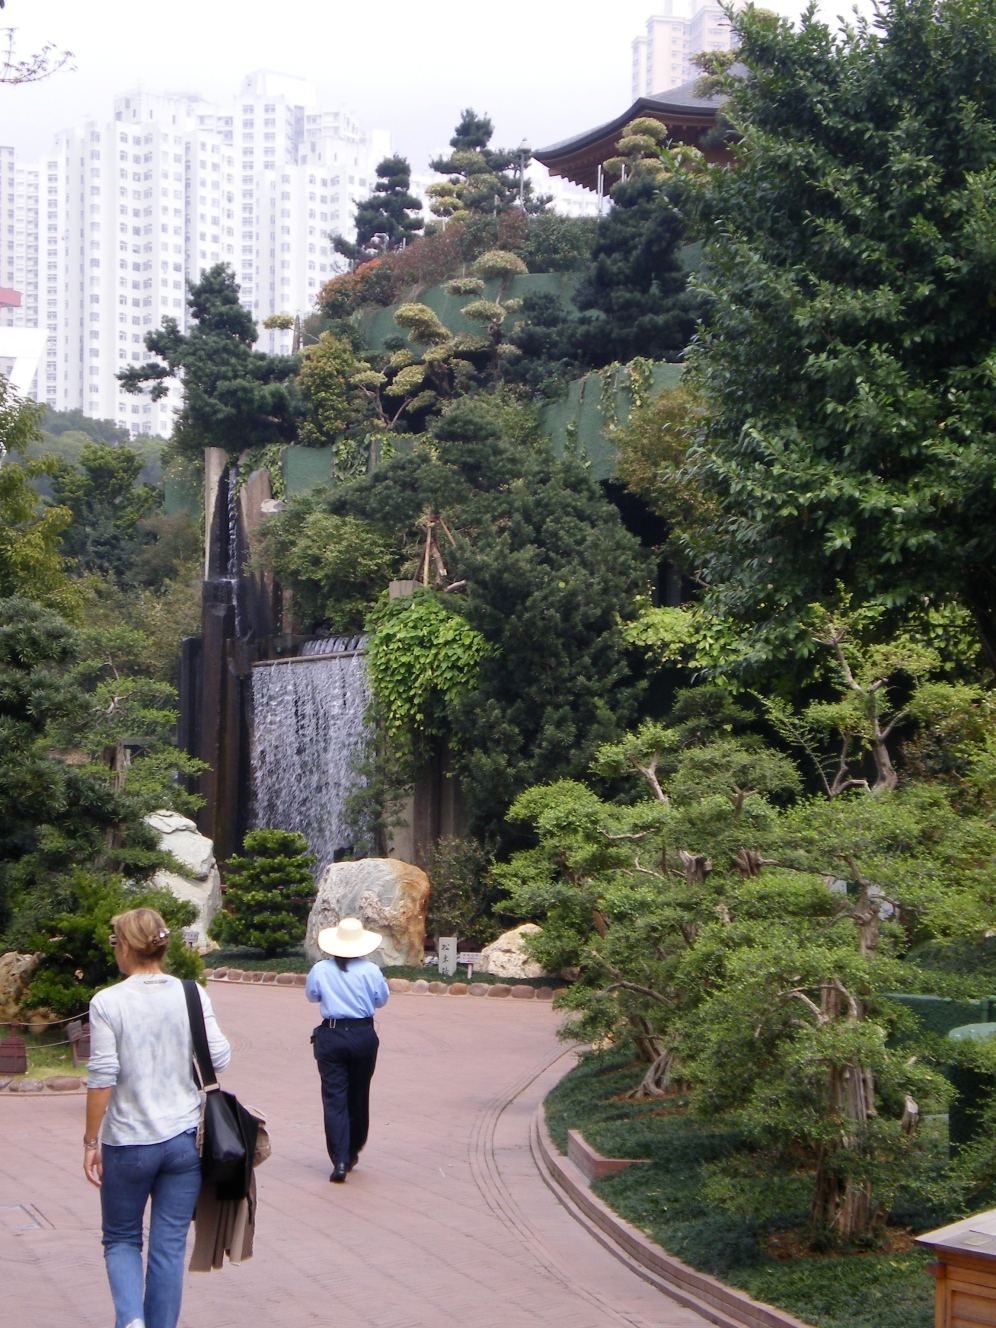 In the buddhist park